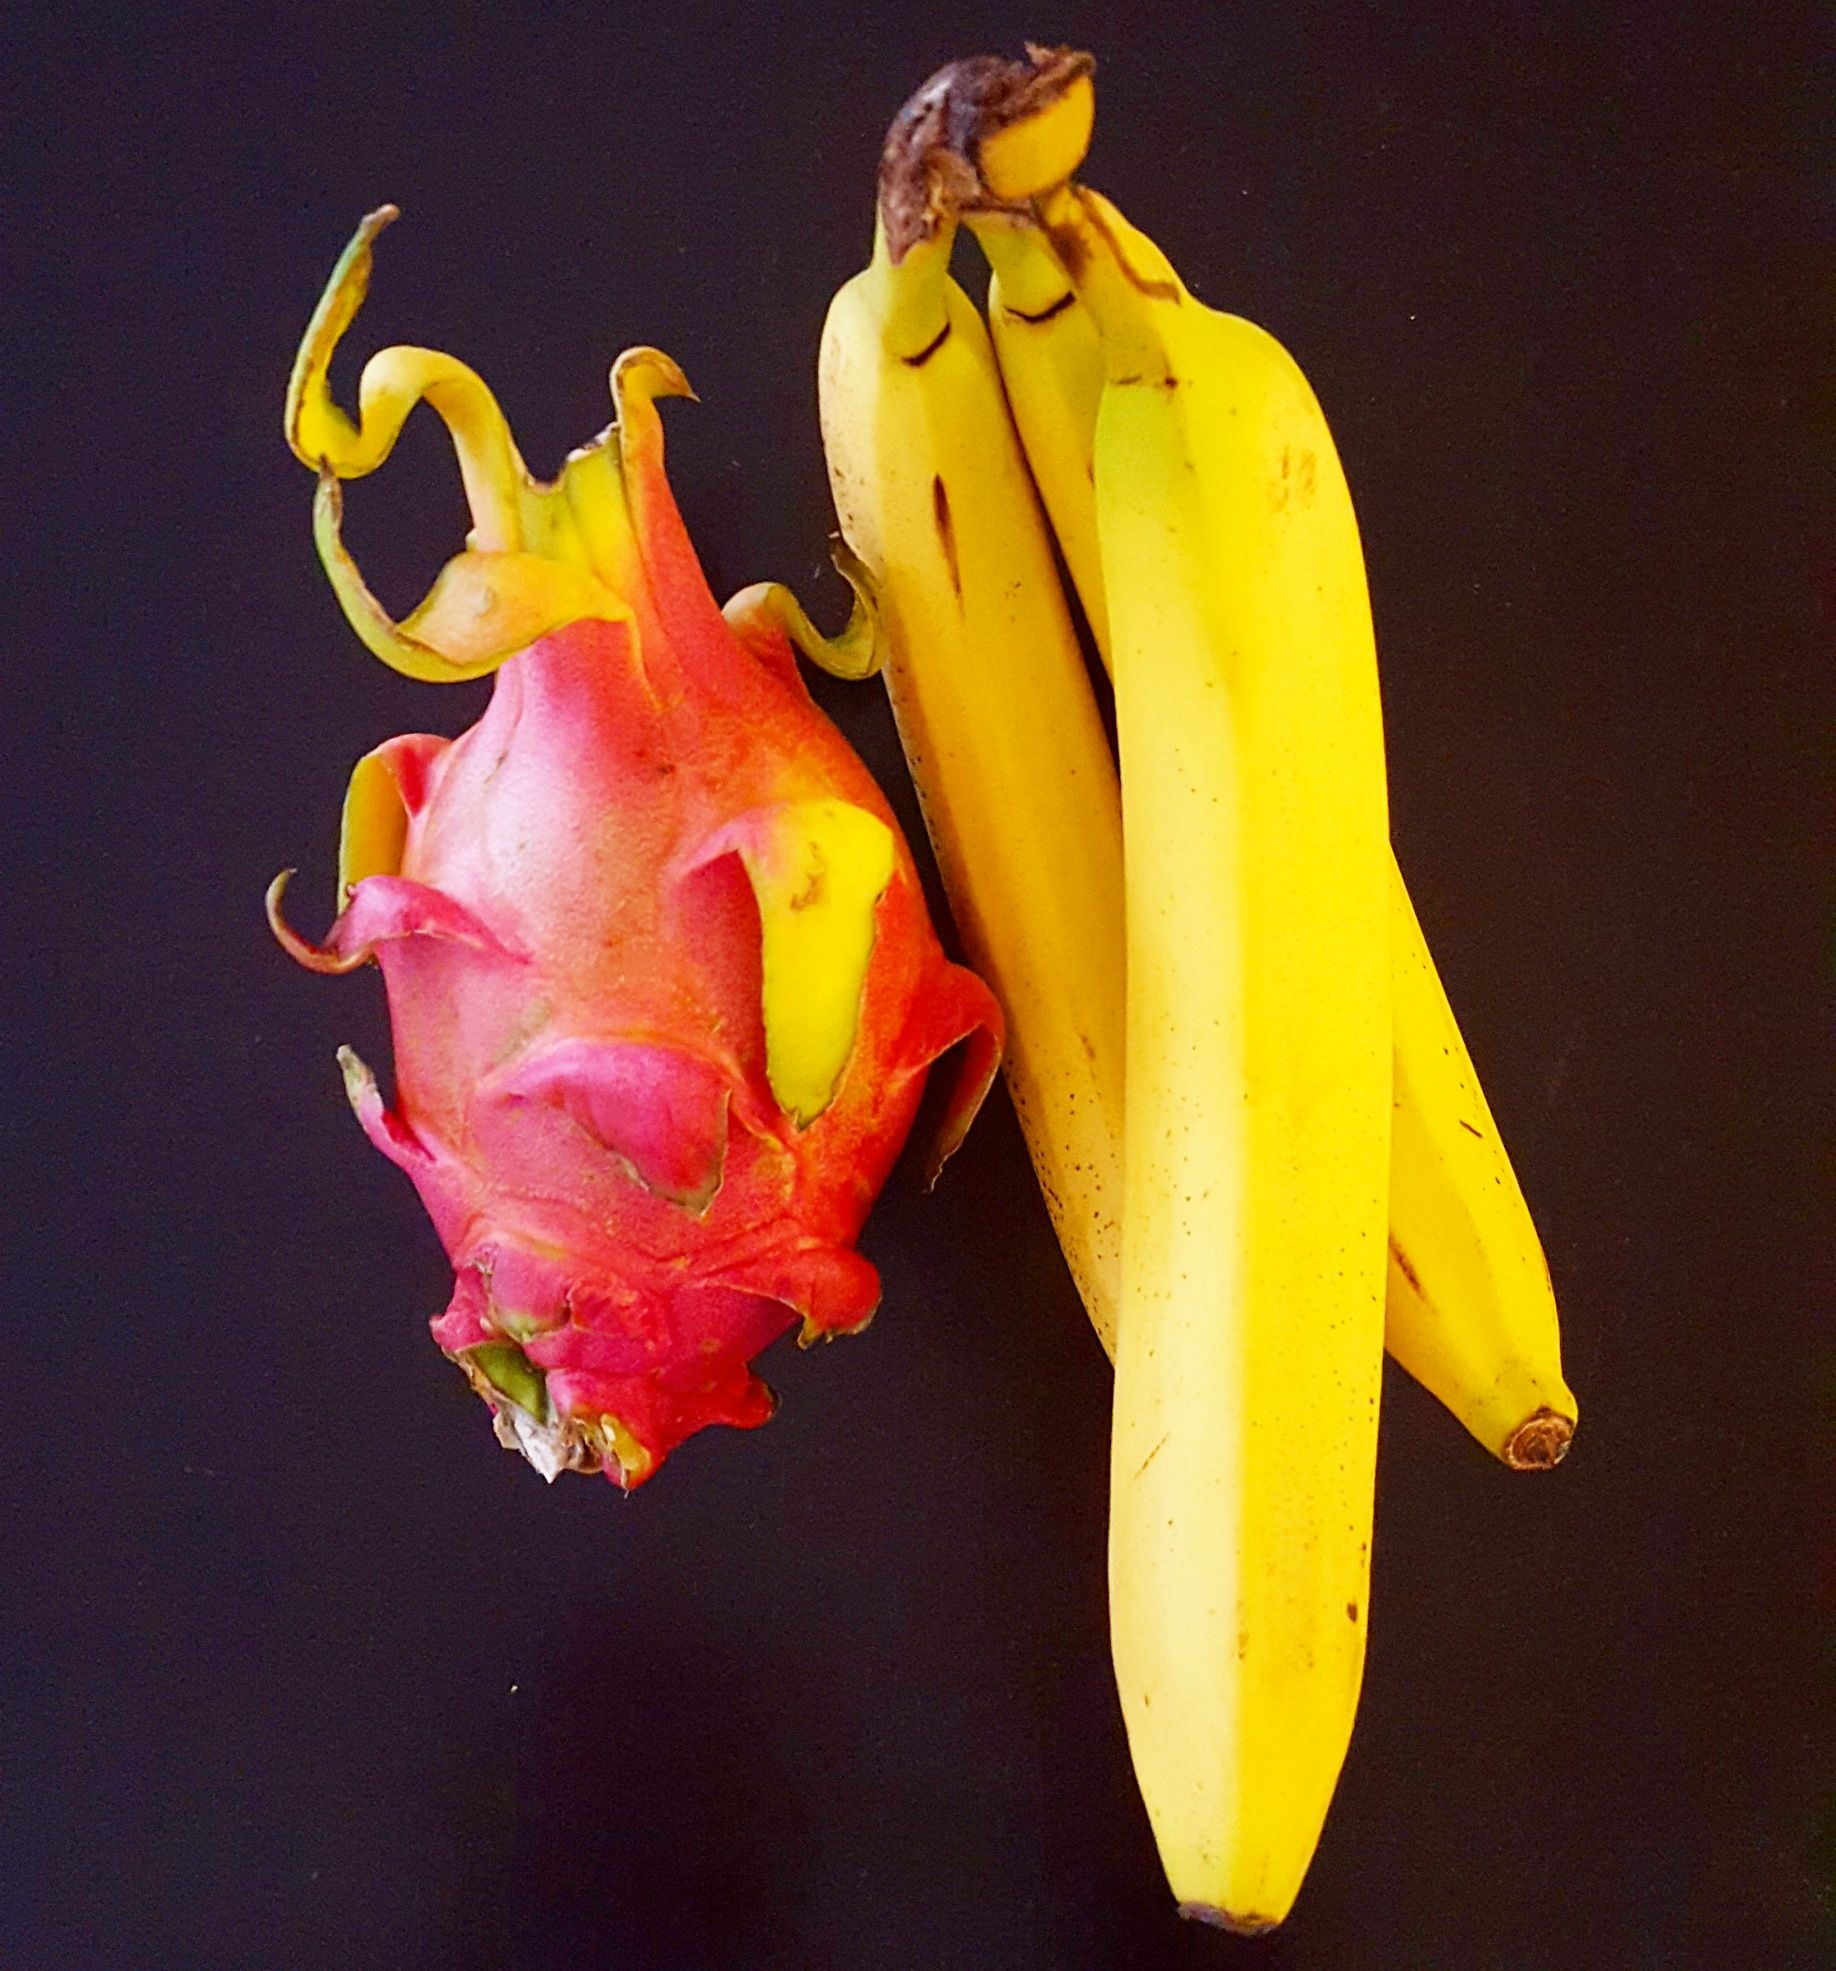 How Is Dragon Fruit Good For You? - http://gotglam.com/2016/07/25/food-and-drinks/how-is-dragon-fruit-good-for-you/